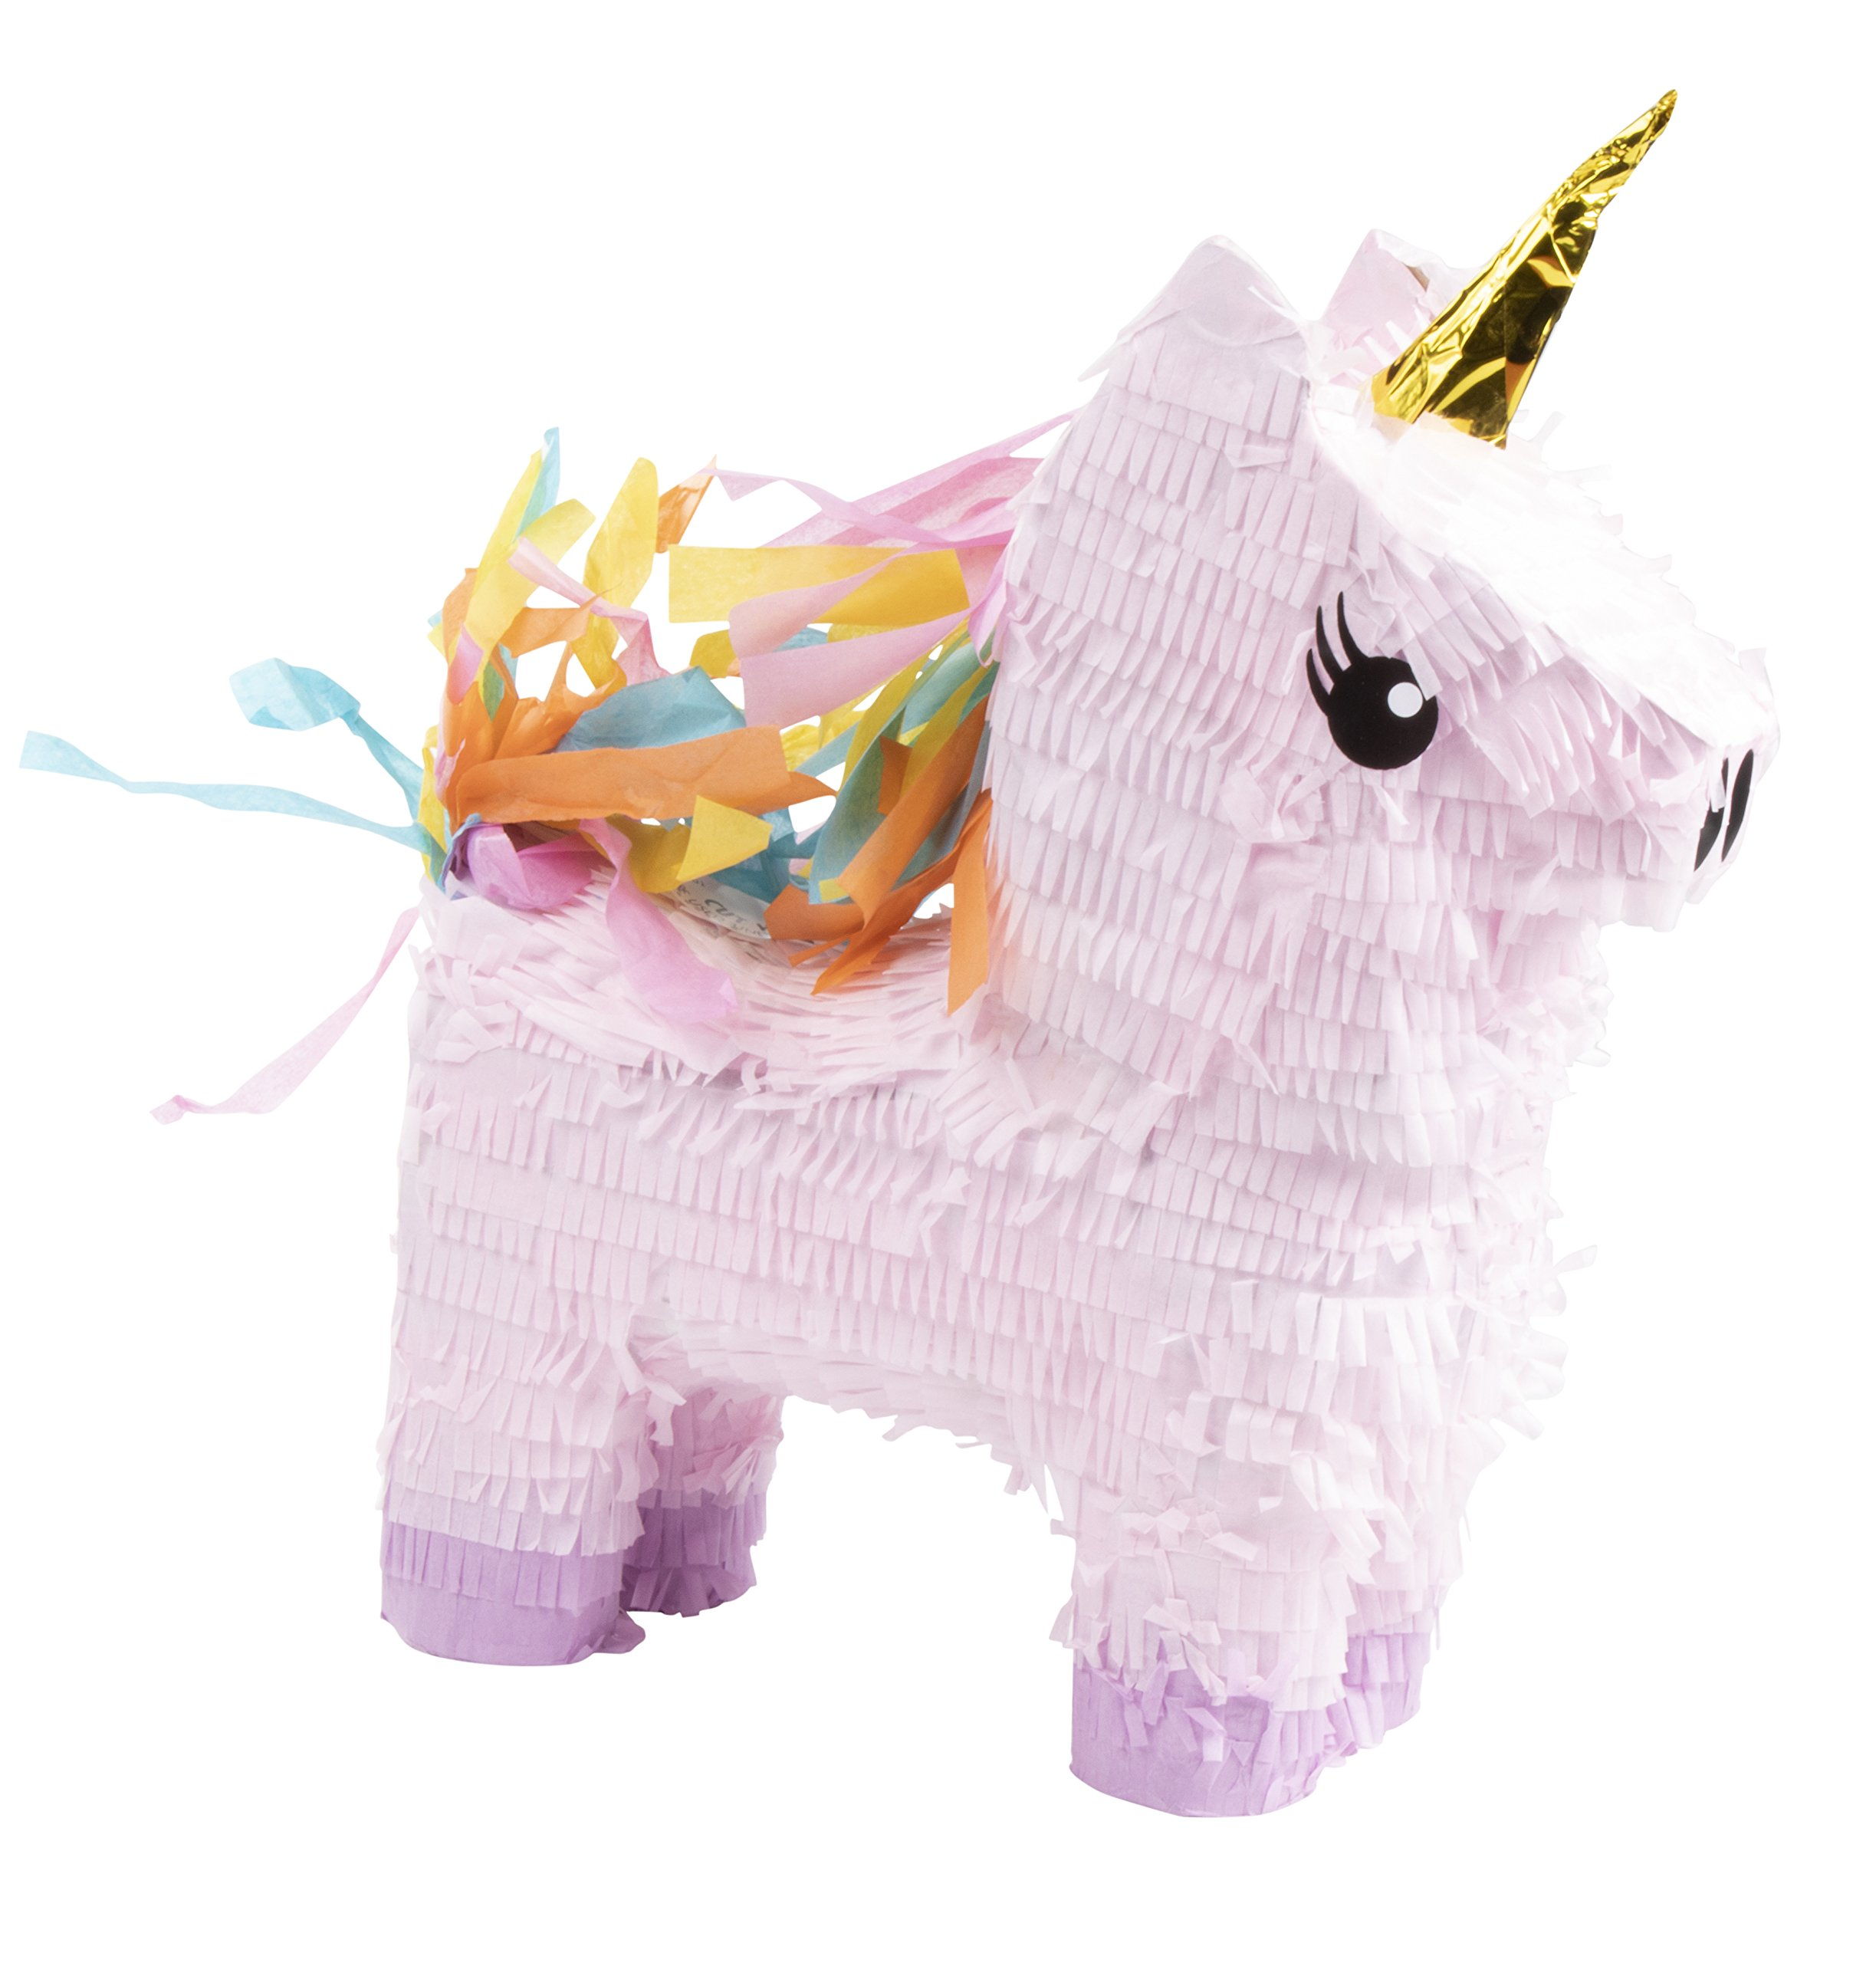 Unicorn Pinata - Kids Birthday Party Supplies for Unicorn Themed Party, Pink and Purple with Gold Foil Horn, 13.4 x 15.5 x 4.6 Inches by Blue Panda